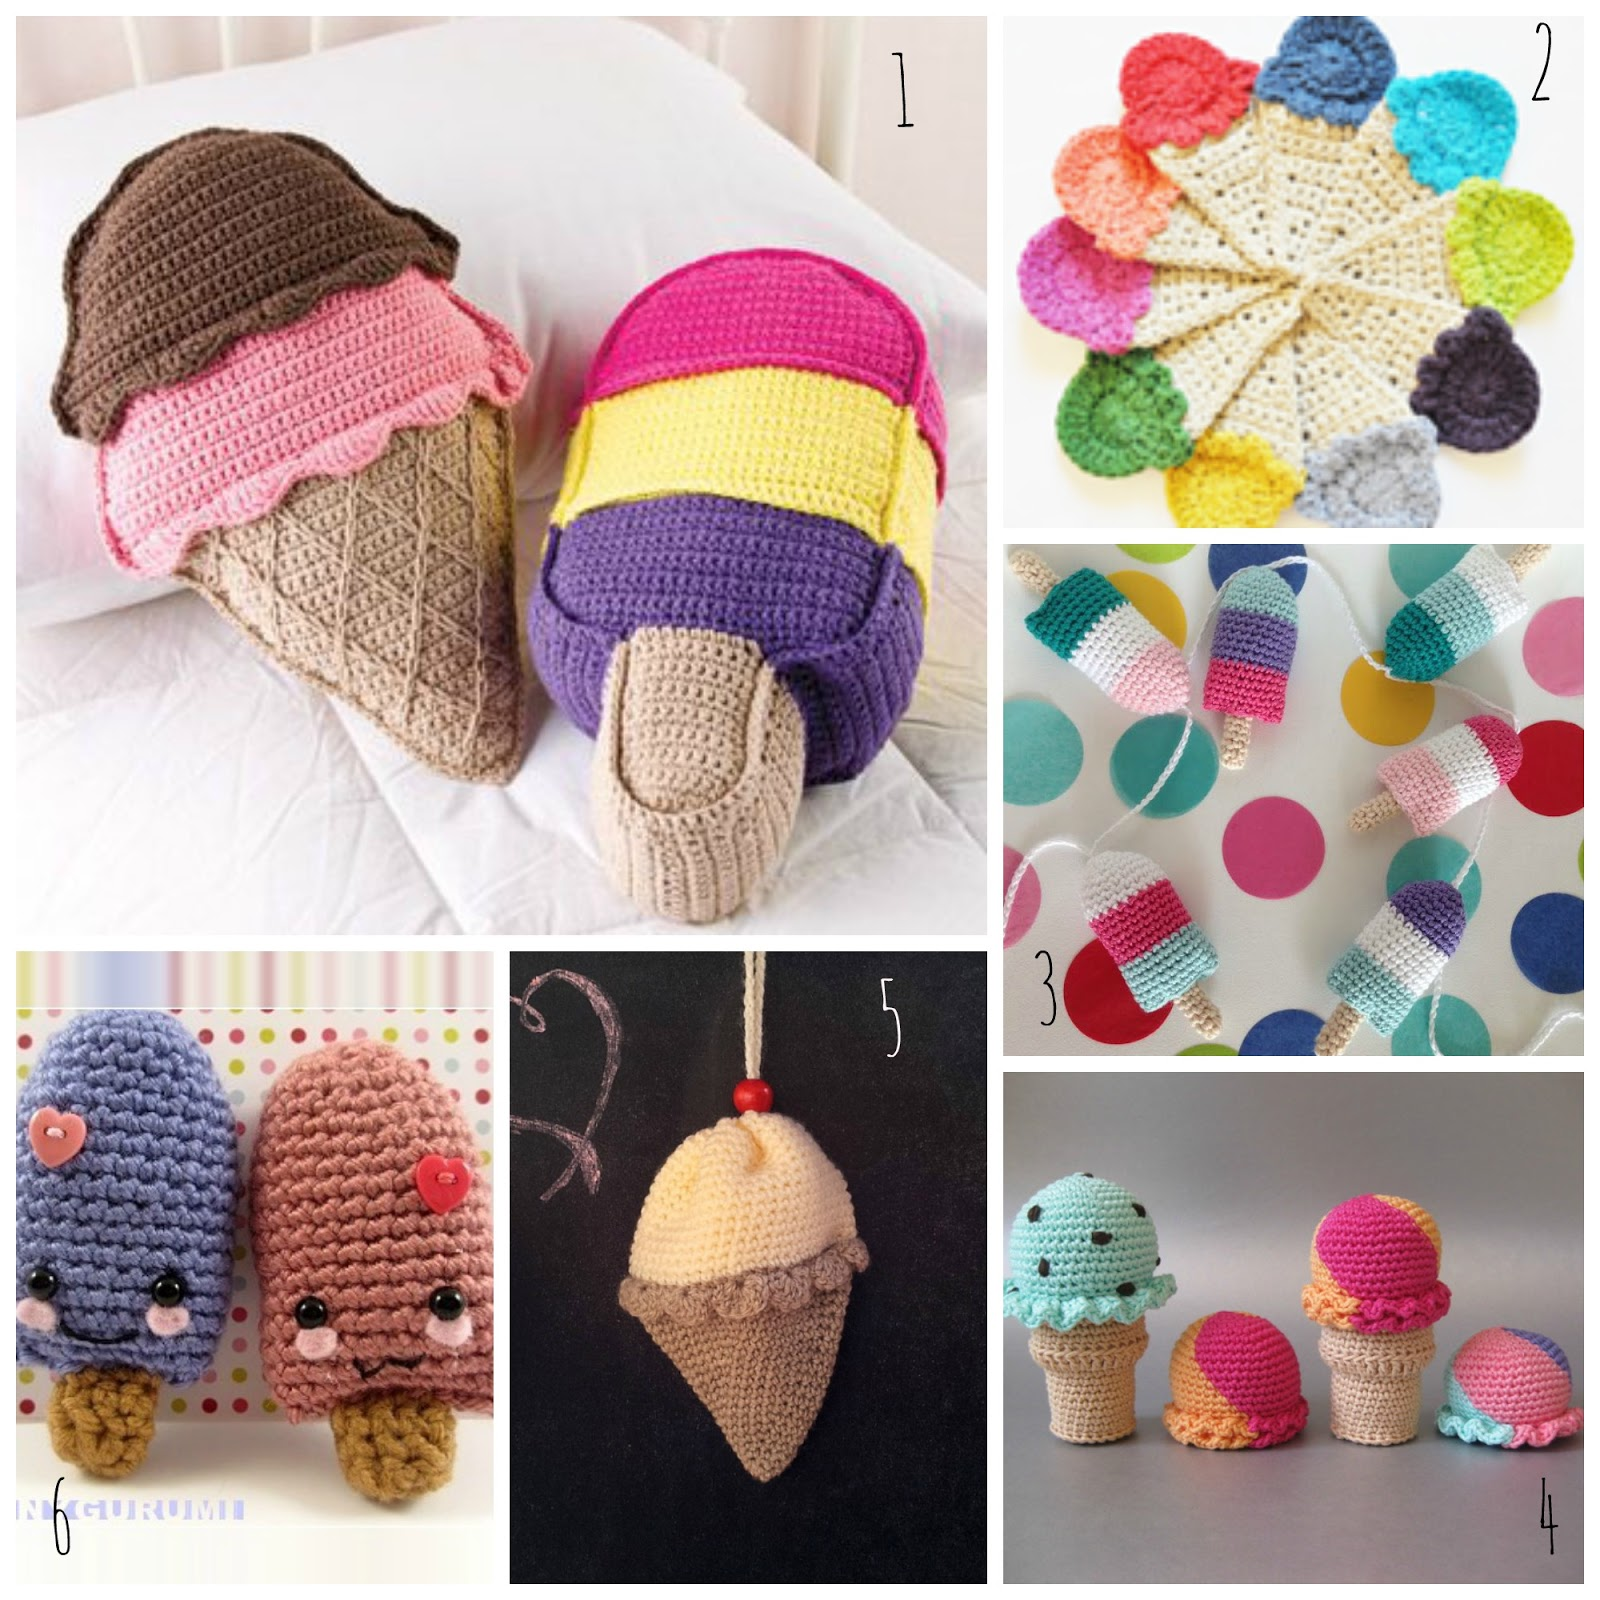 sol de noche deco crochet free patterns party ice cream. Black Bedroom Furniture Sets. Home Design Ideas